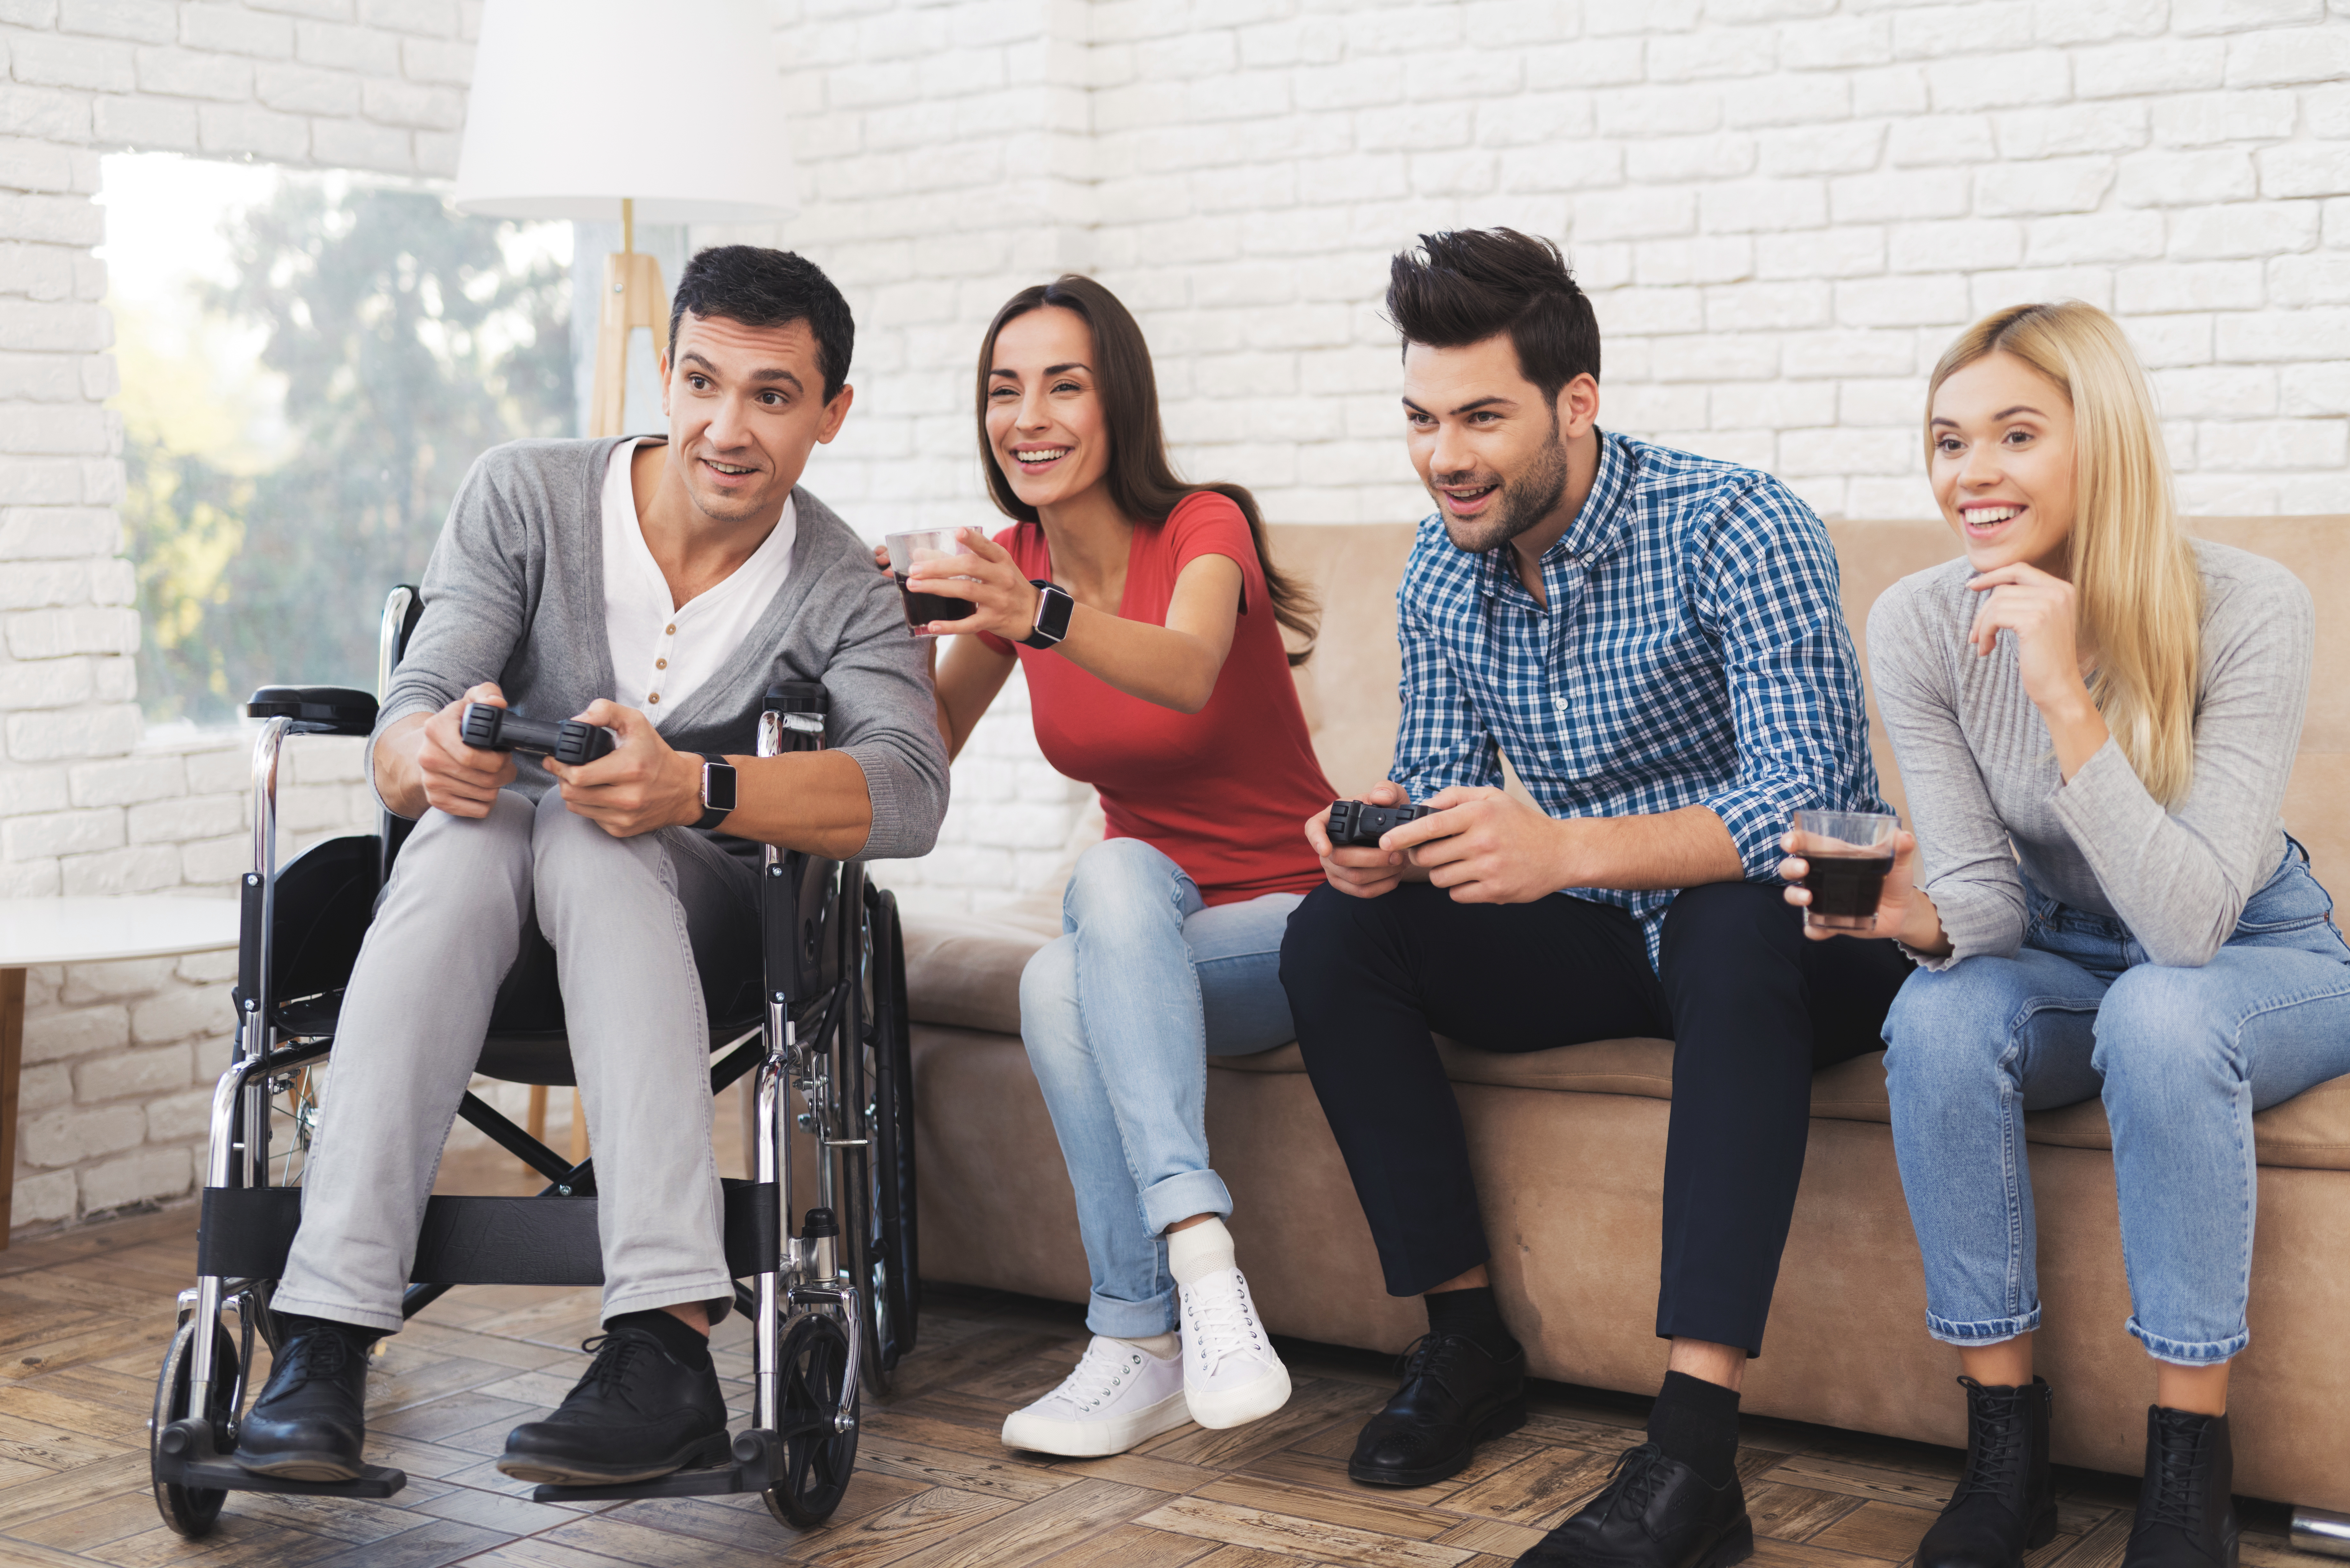 wheelchair group video games male